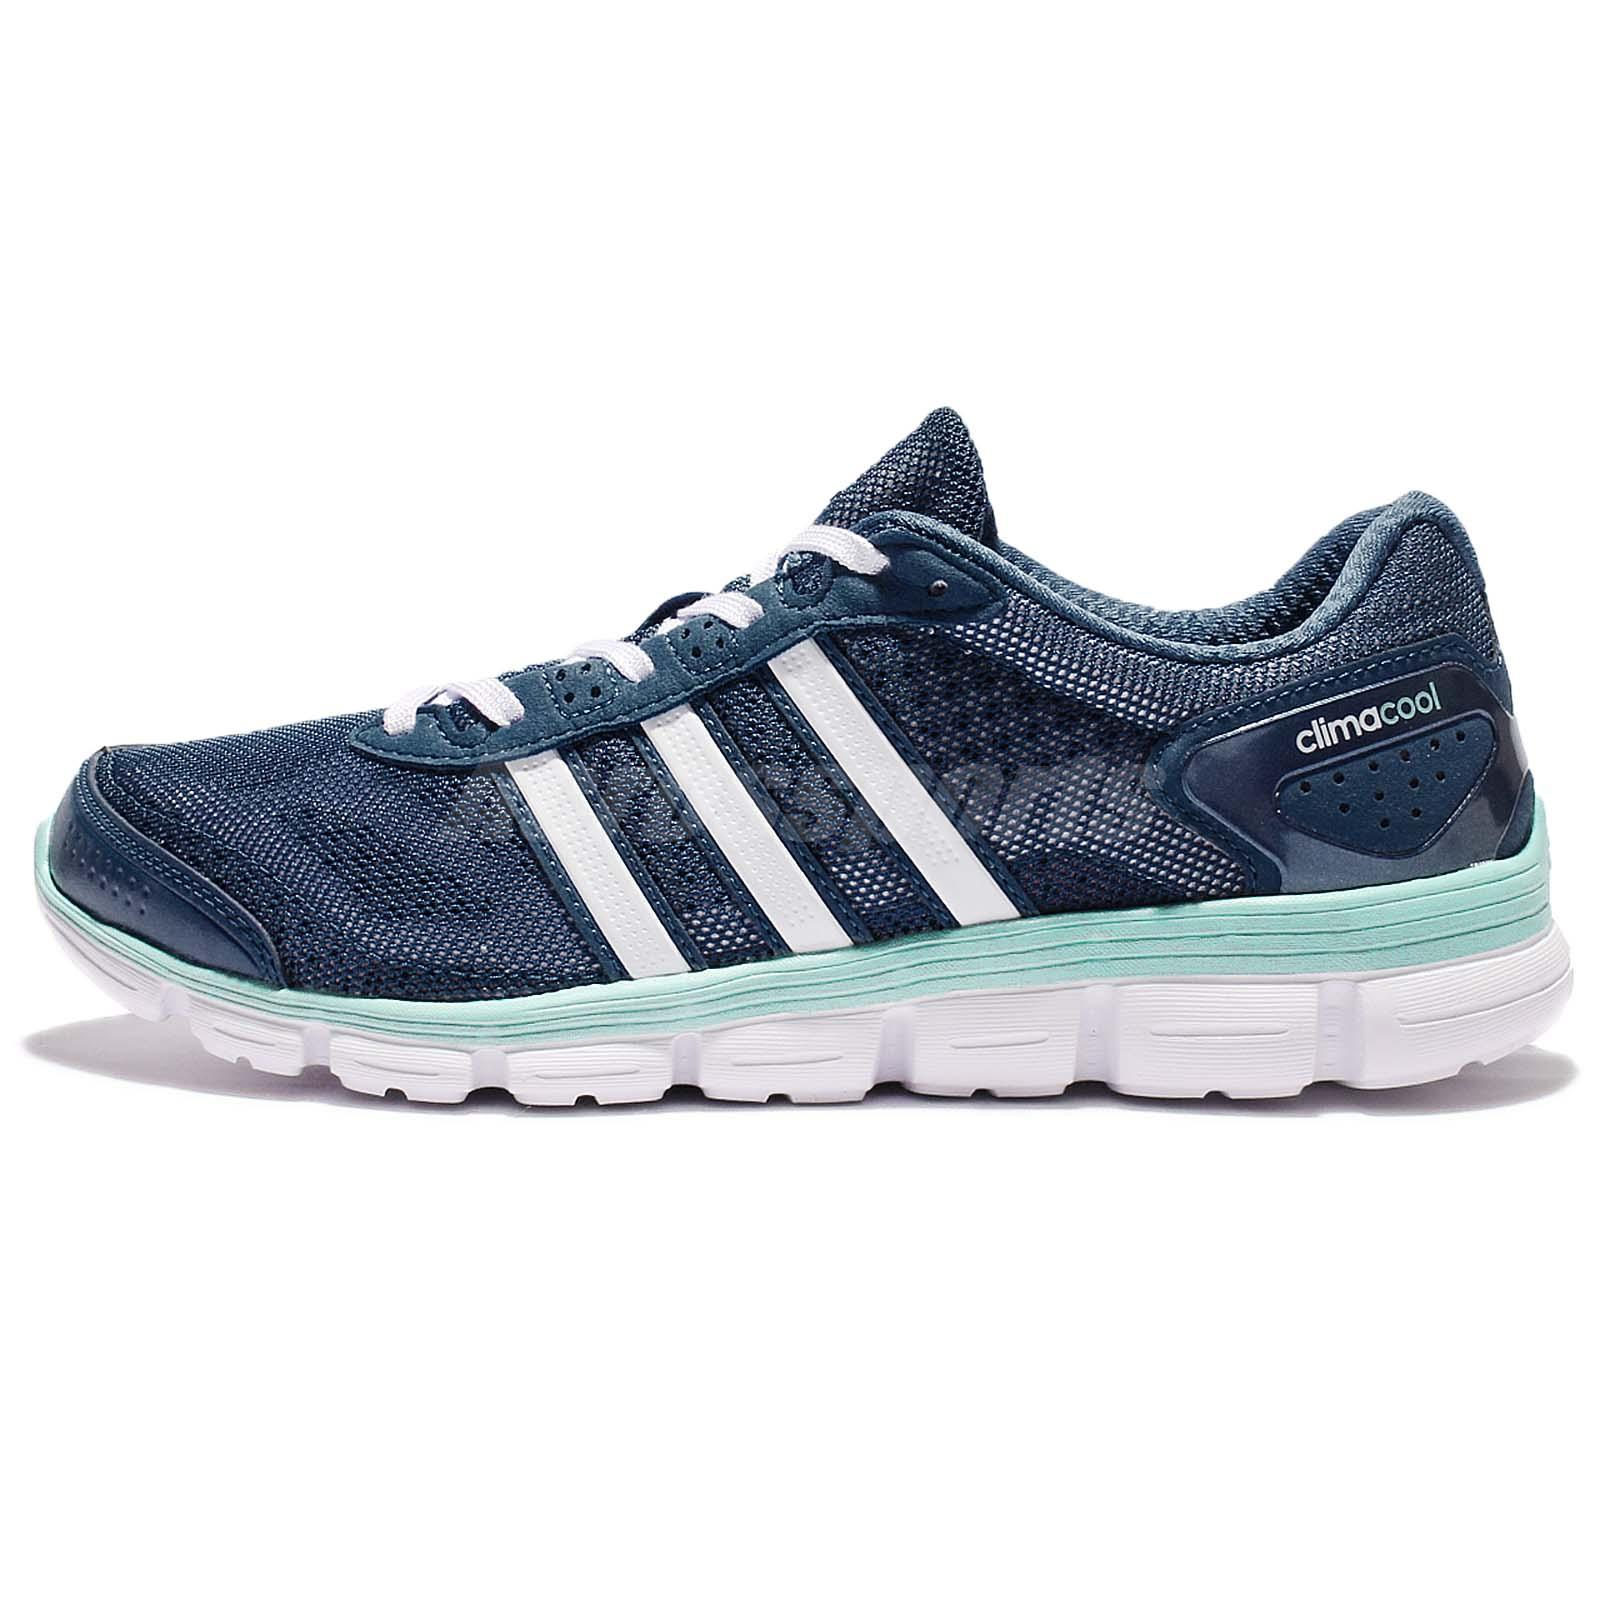 online retailer 06892 11109 50% Off adidas CC Fresh M Climacool Blue Navy Men Running Shoes Sneakers  S76751